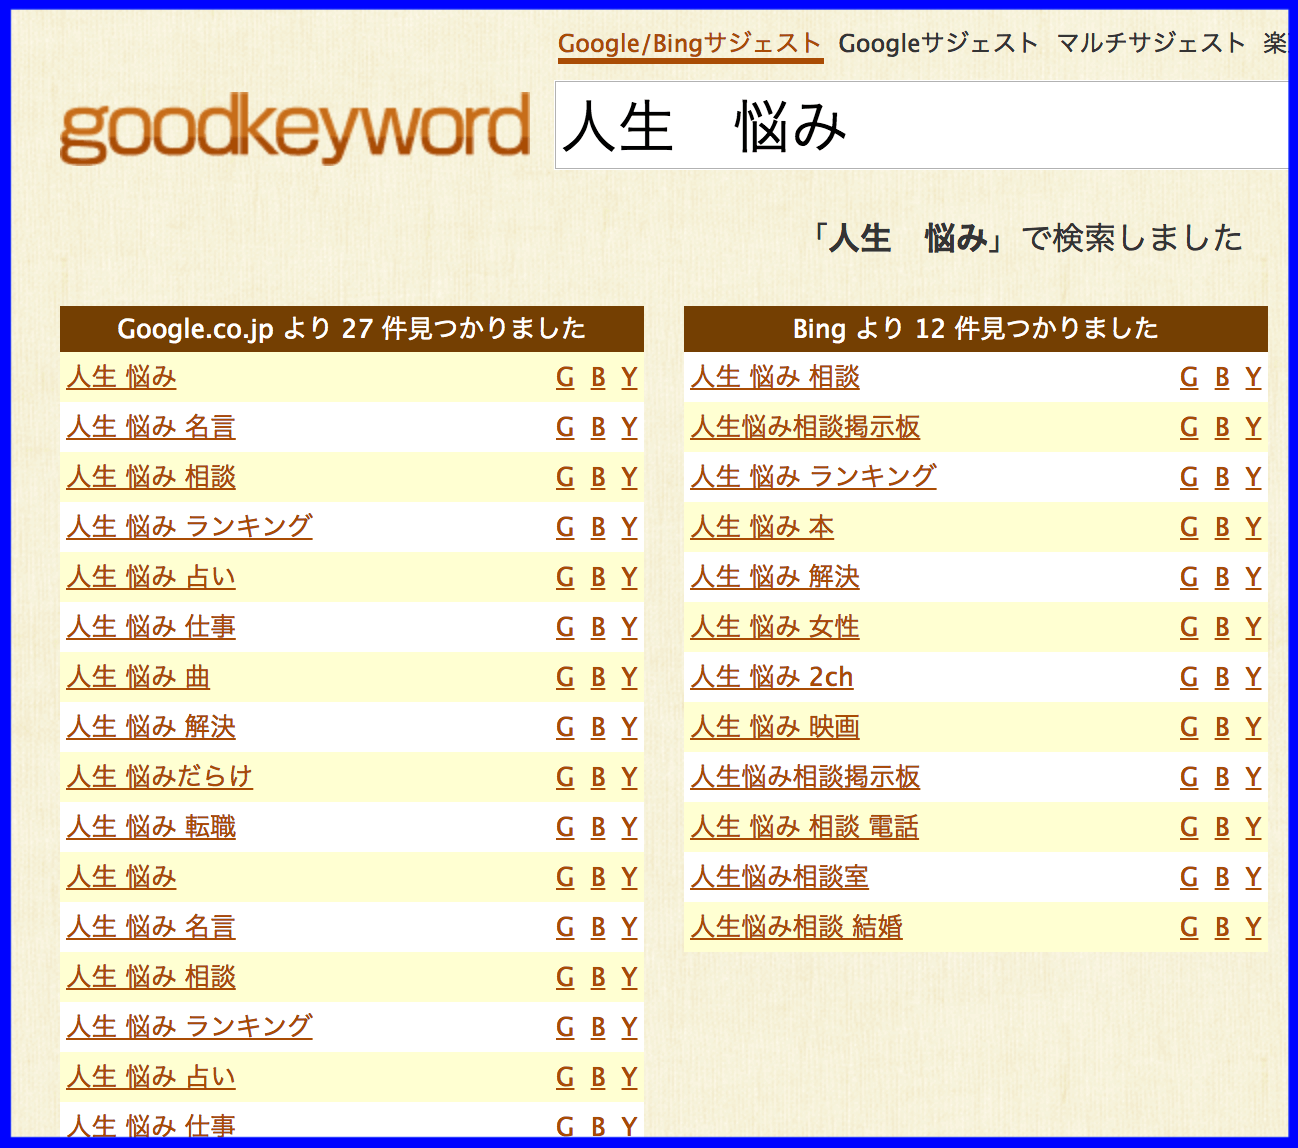 goodkeywordの画像